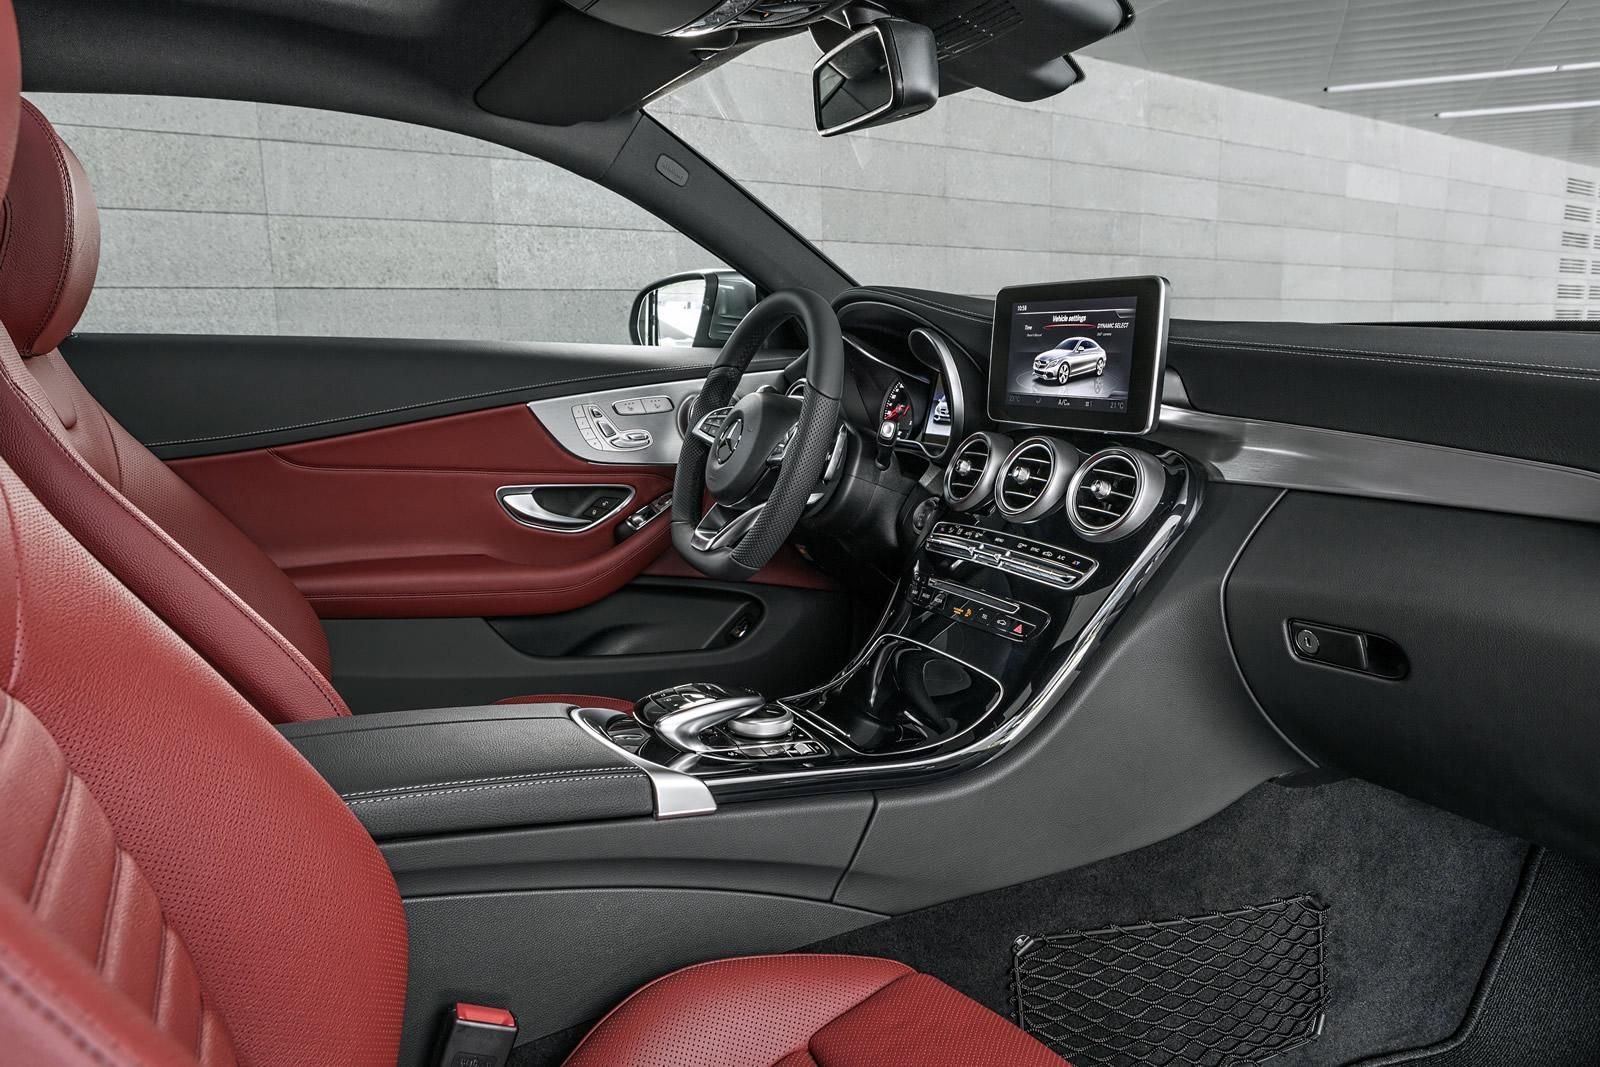 hight resolution of image result for red mercedes glc interior